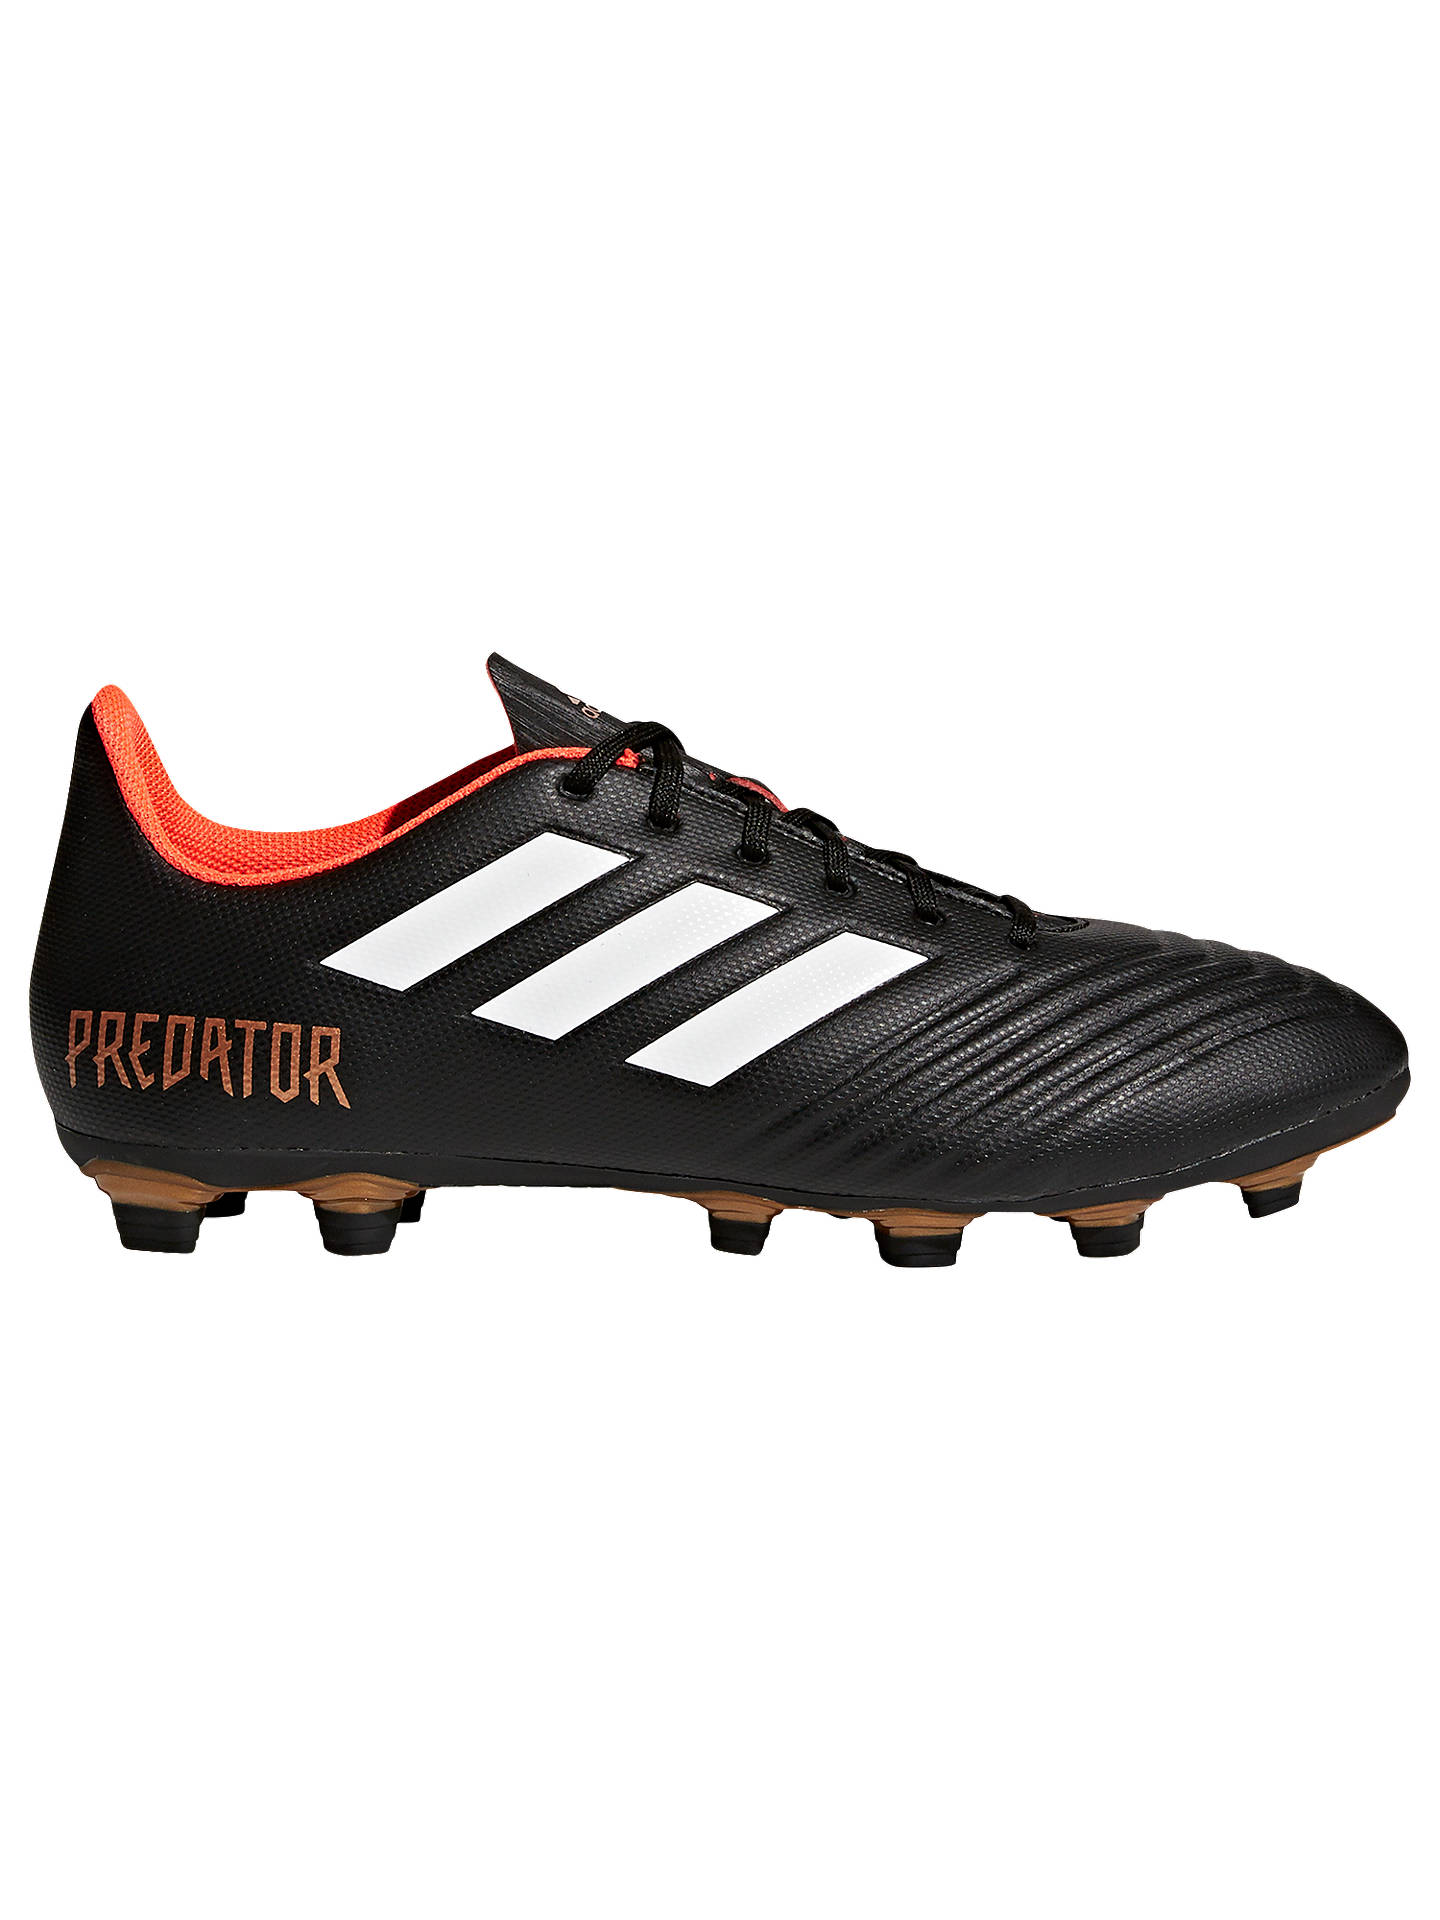 adidas Predator Ace 18.4 Flexible Ground Football Boots at John ... 611122e0178bd